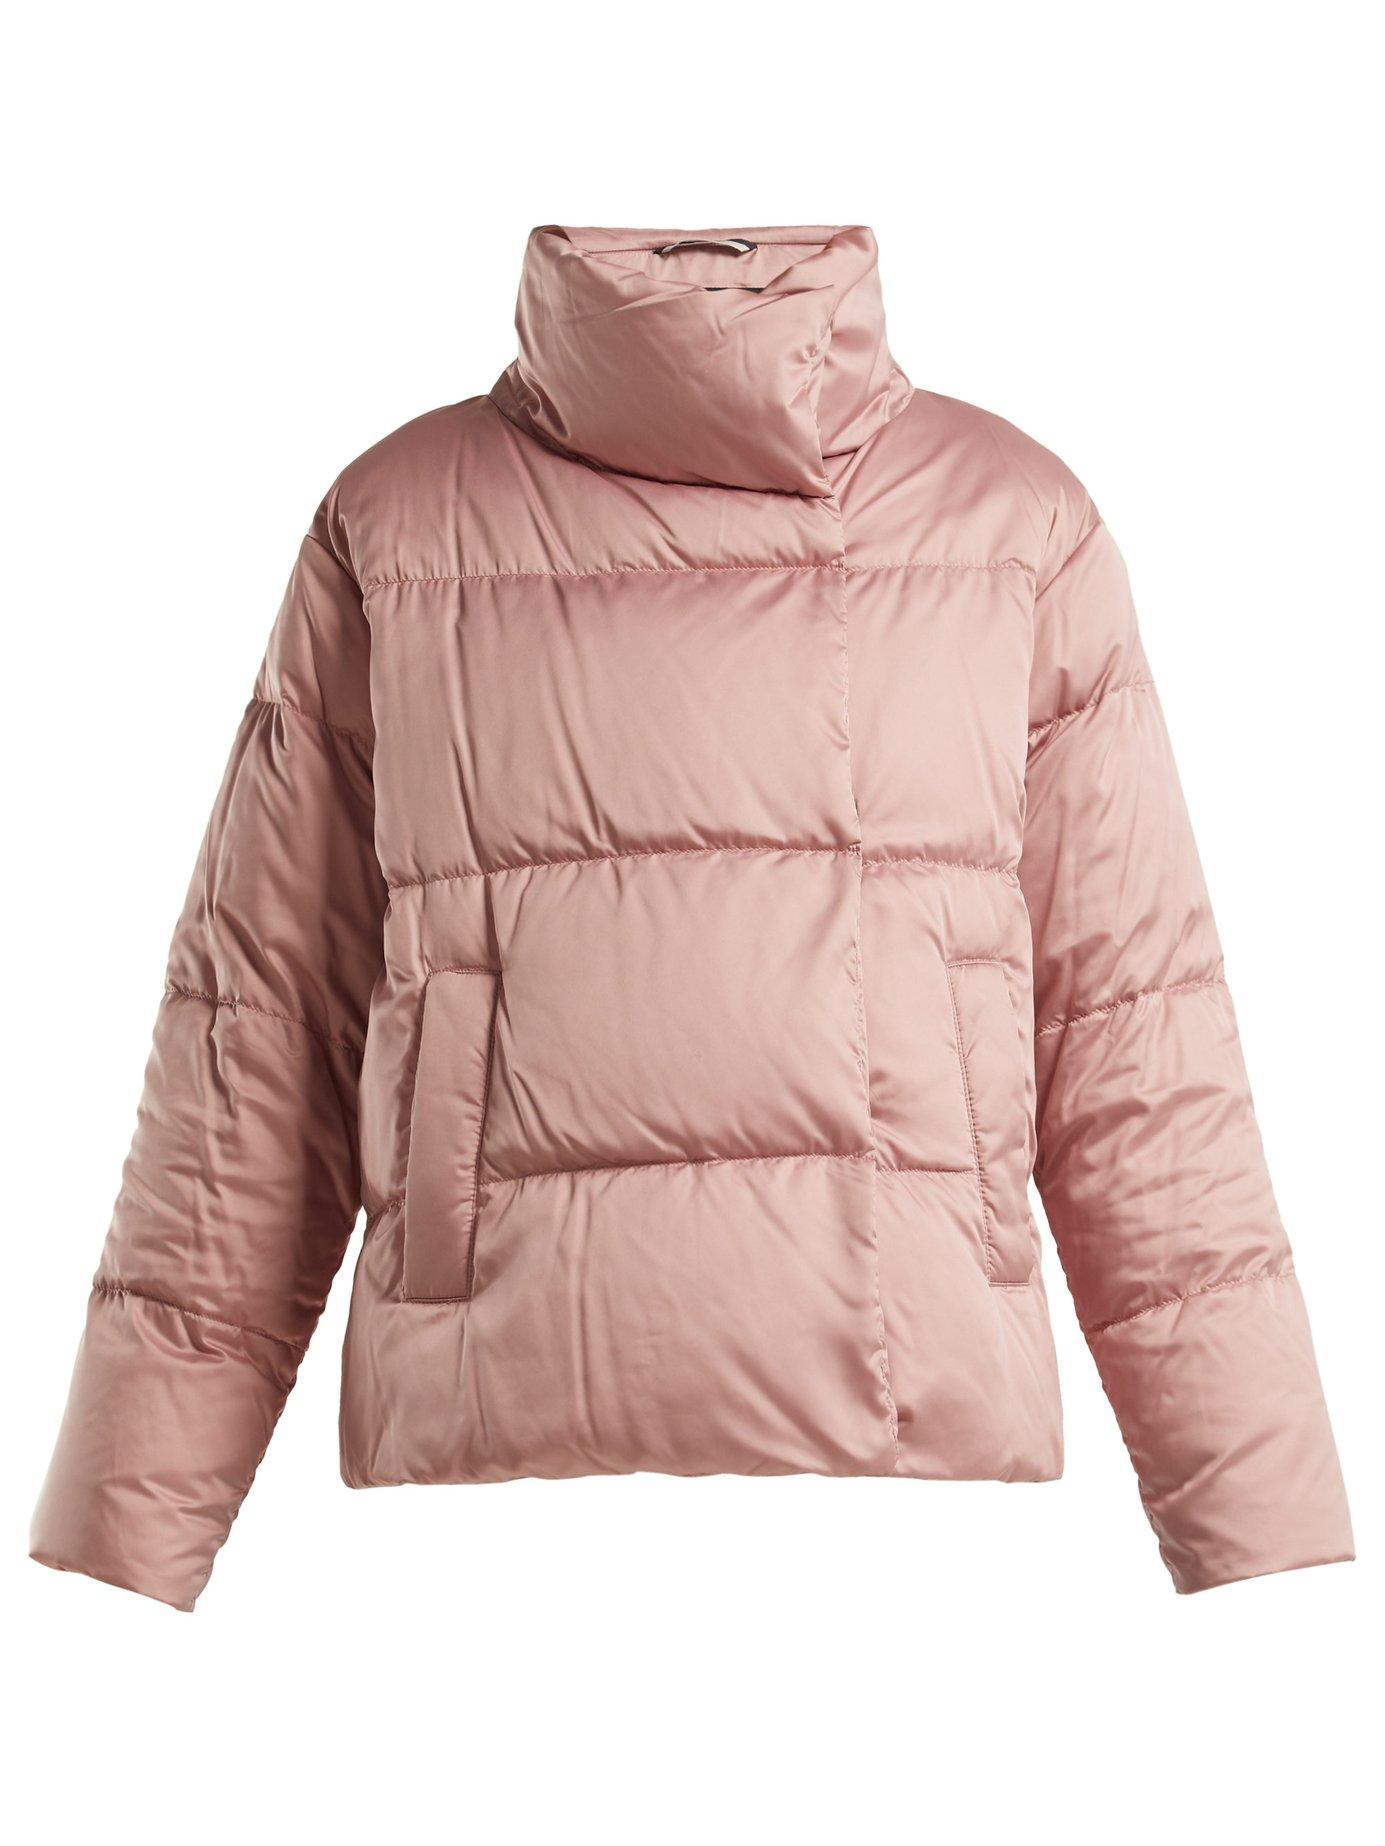 b182e795c0f5f Weekend Max Mara Creta Jacket In Pink